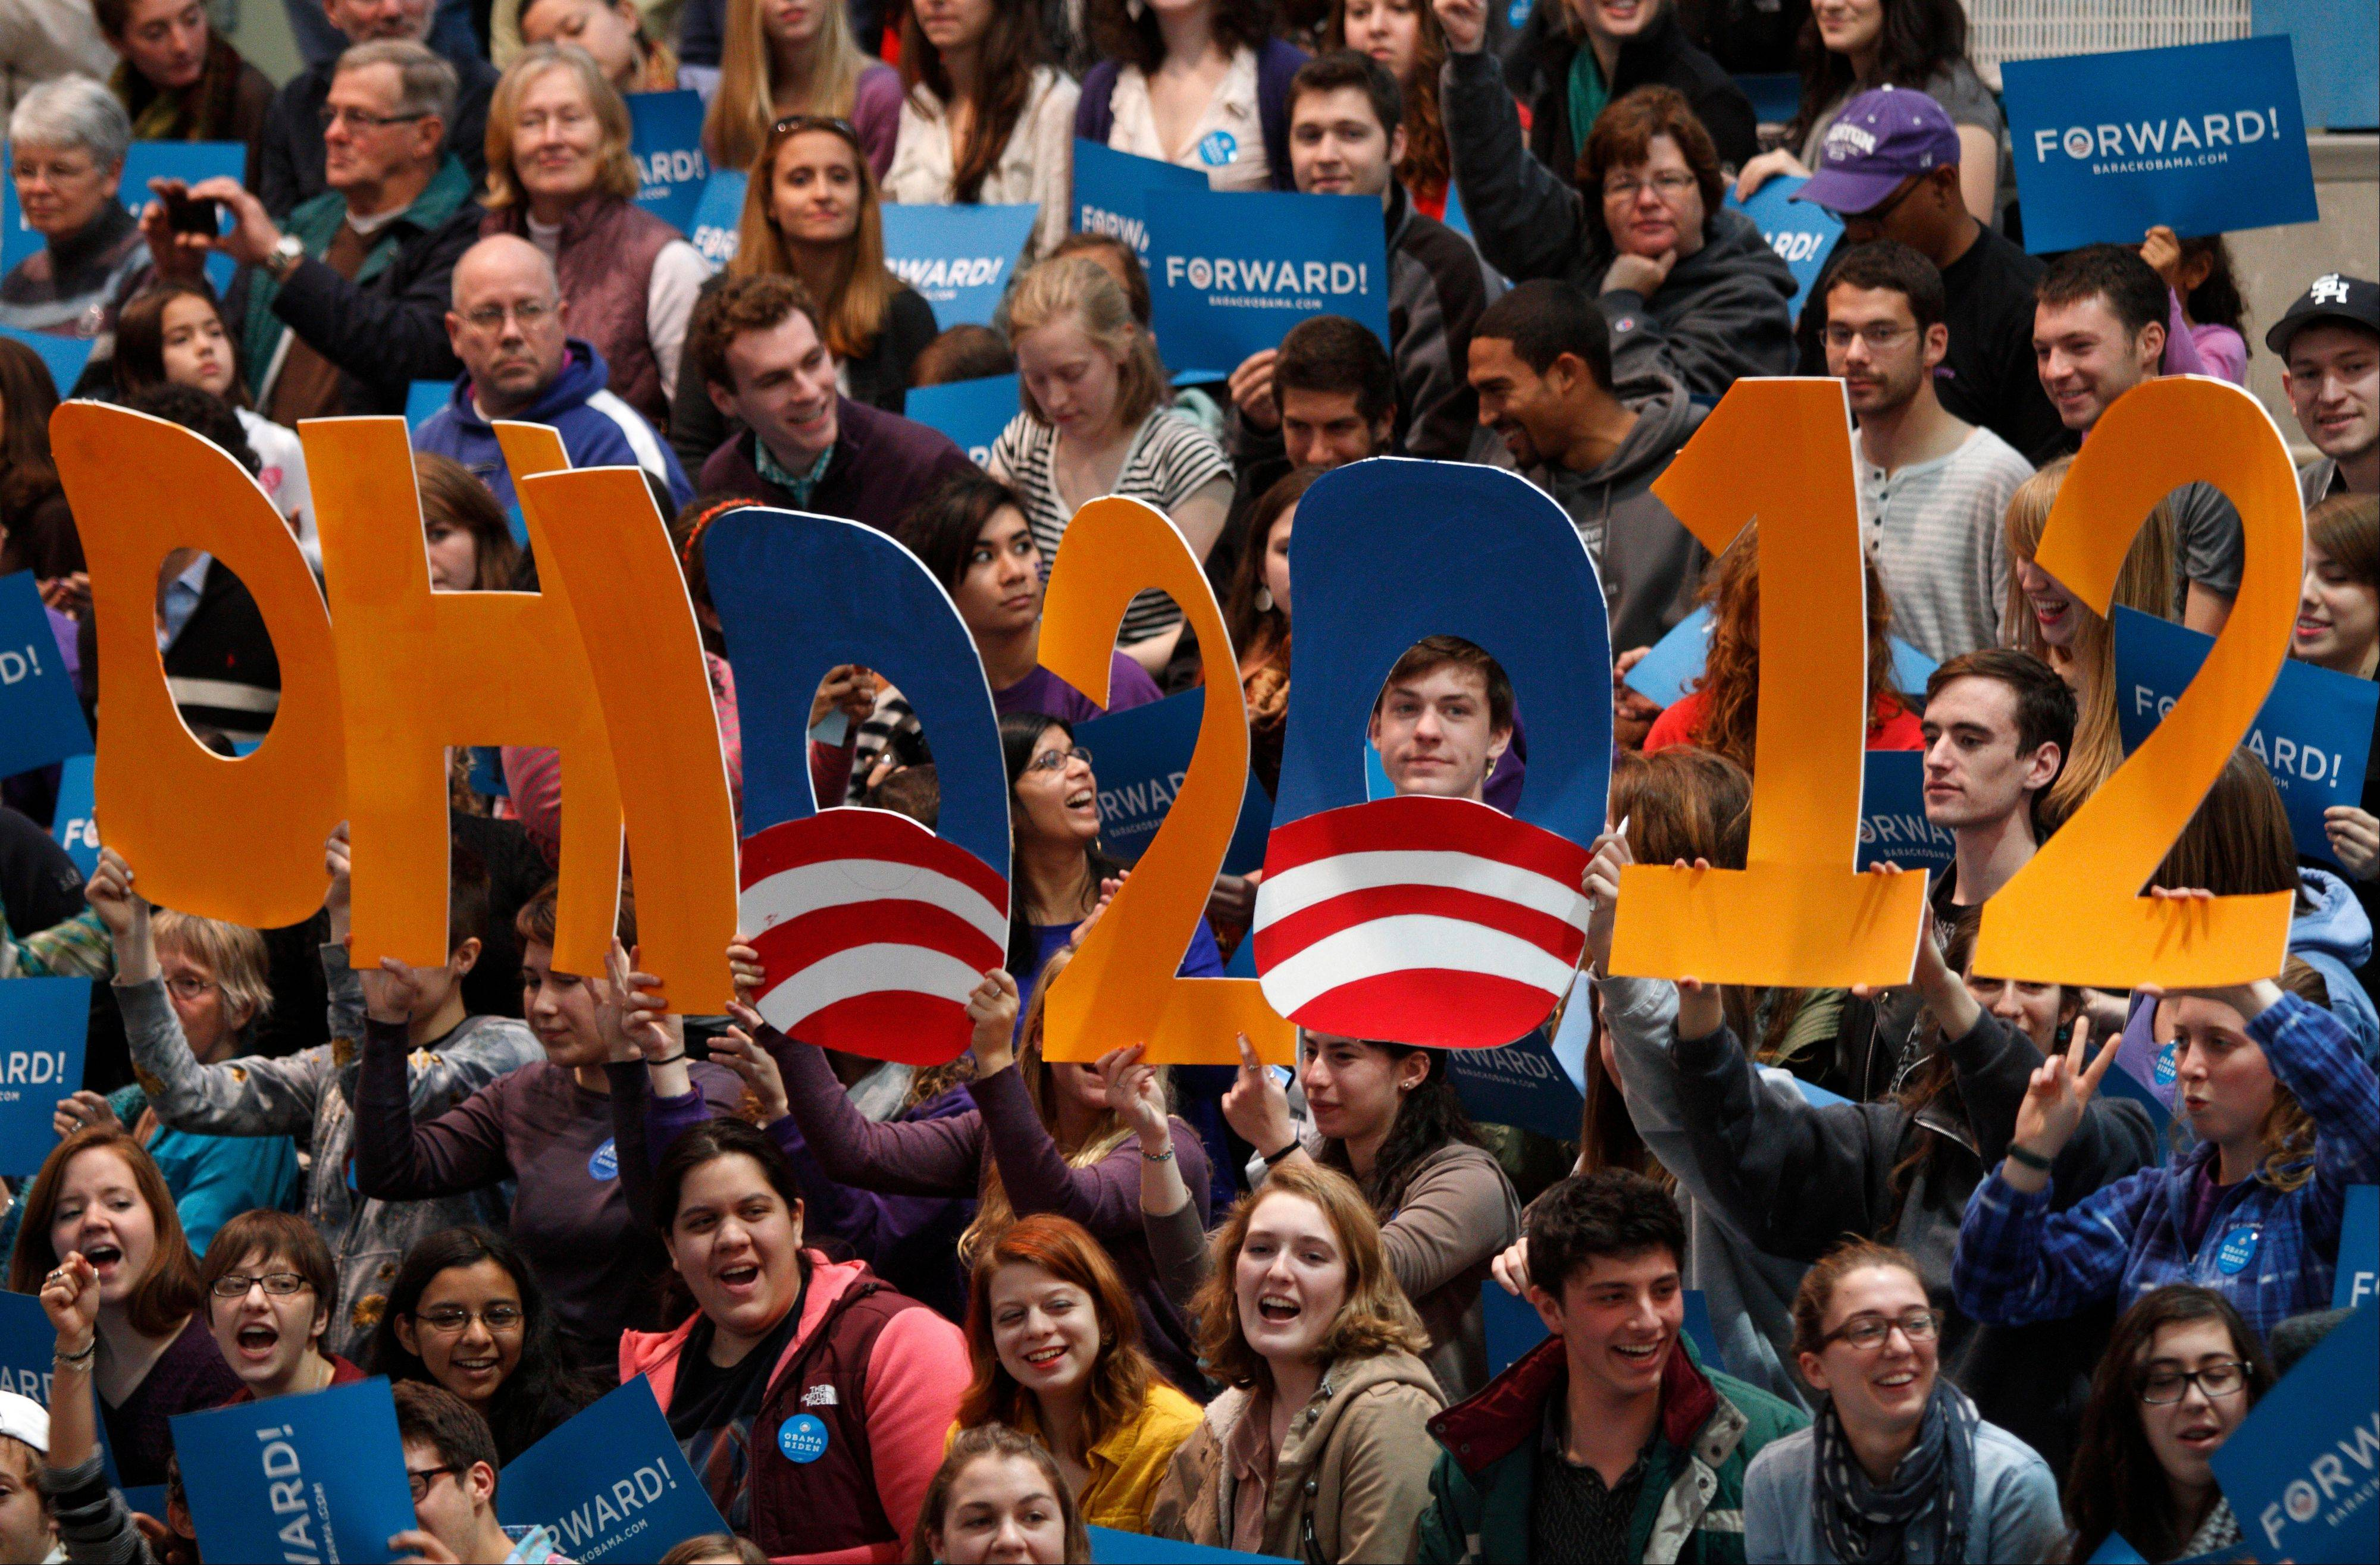 Supporters hold up a sign as they wait for first lady Michelle Obama to speak during a campaign rally for her husband, President Barack Obama, at Kenyon College in Gambier, Ohio, Saturday. In nearly elction-night scenarios, Ohio plays a pivotal role.